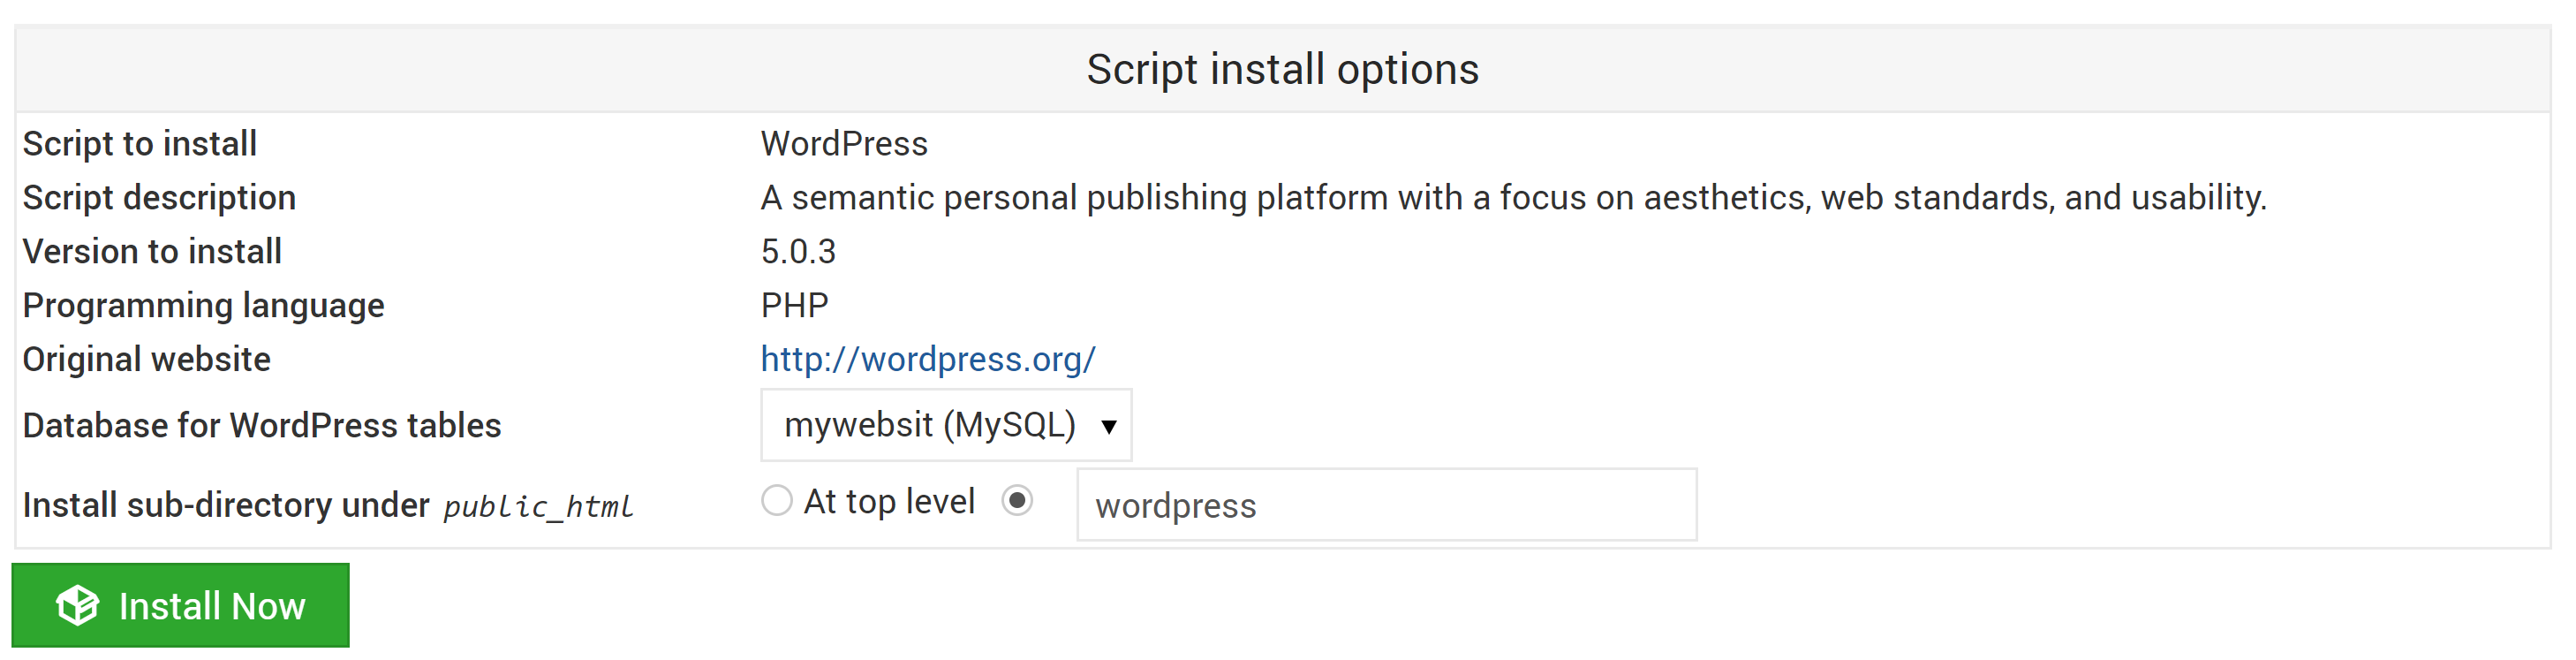 Virtualmin Wordpress Install Options